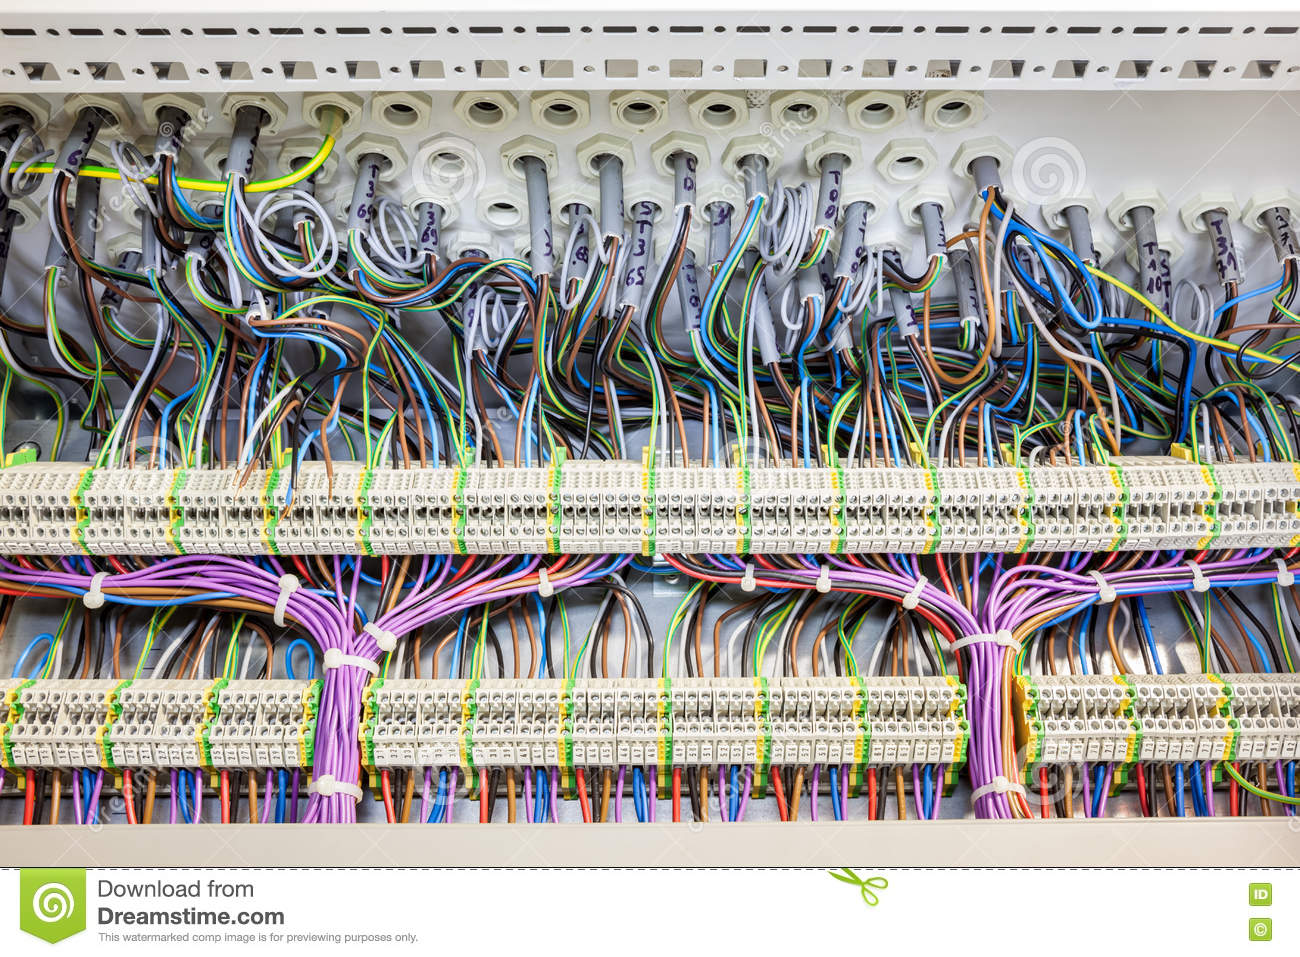 hight resolution of in an fuse box there are an lot of electrical cables with tar